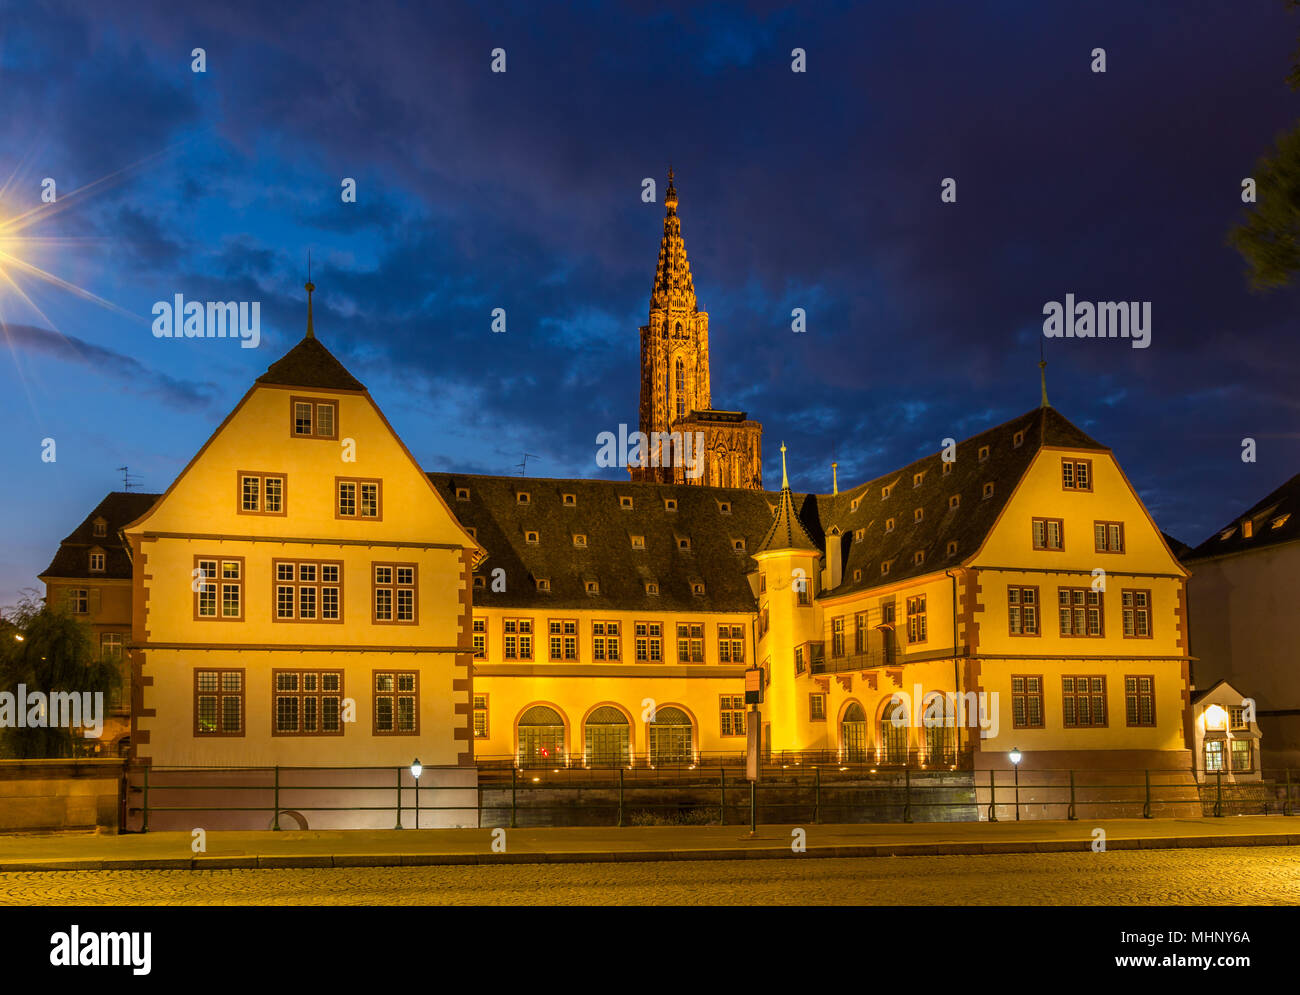 Historical museum of Strasbourg - Alsace, France - Stock Image